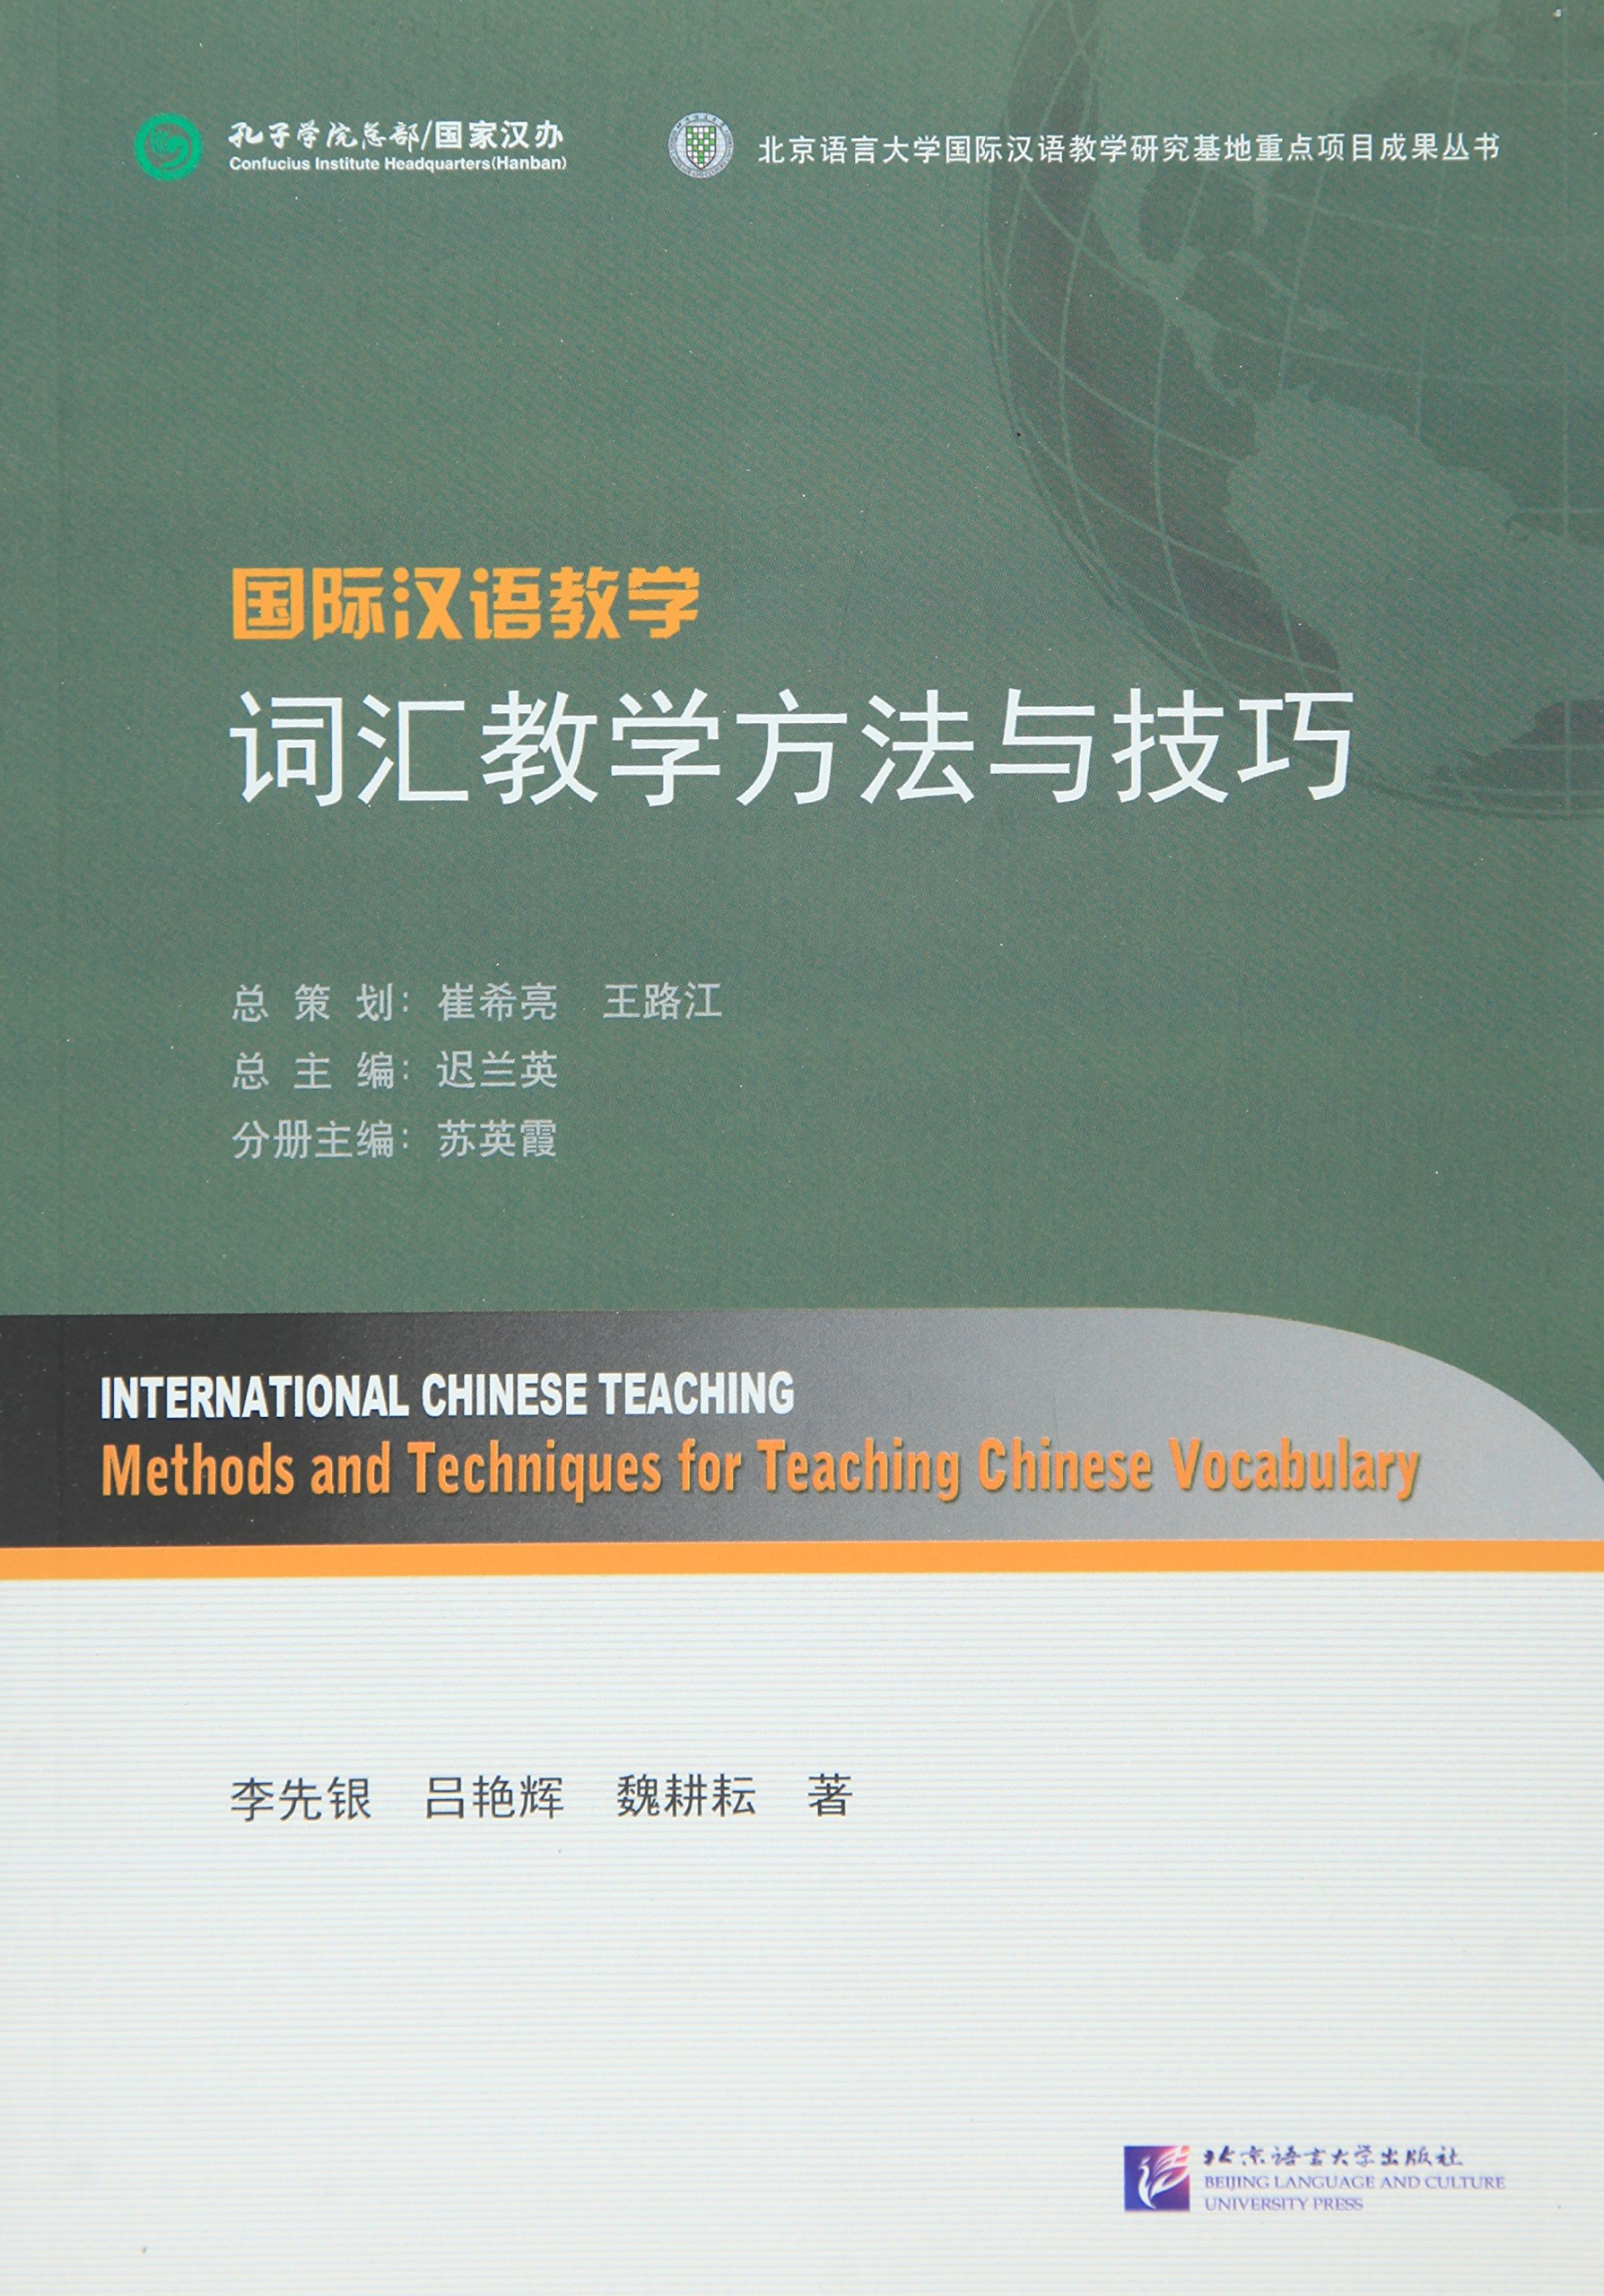 International Chinese Teaching: Methods and Techniques for Teaching Chinese Vocabulary